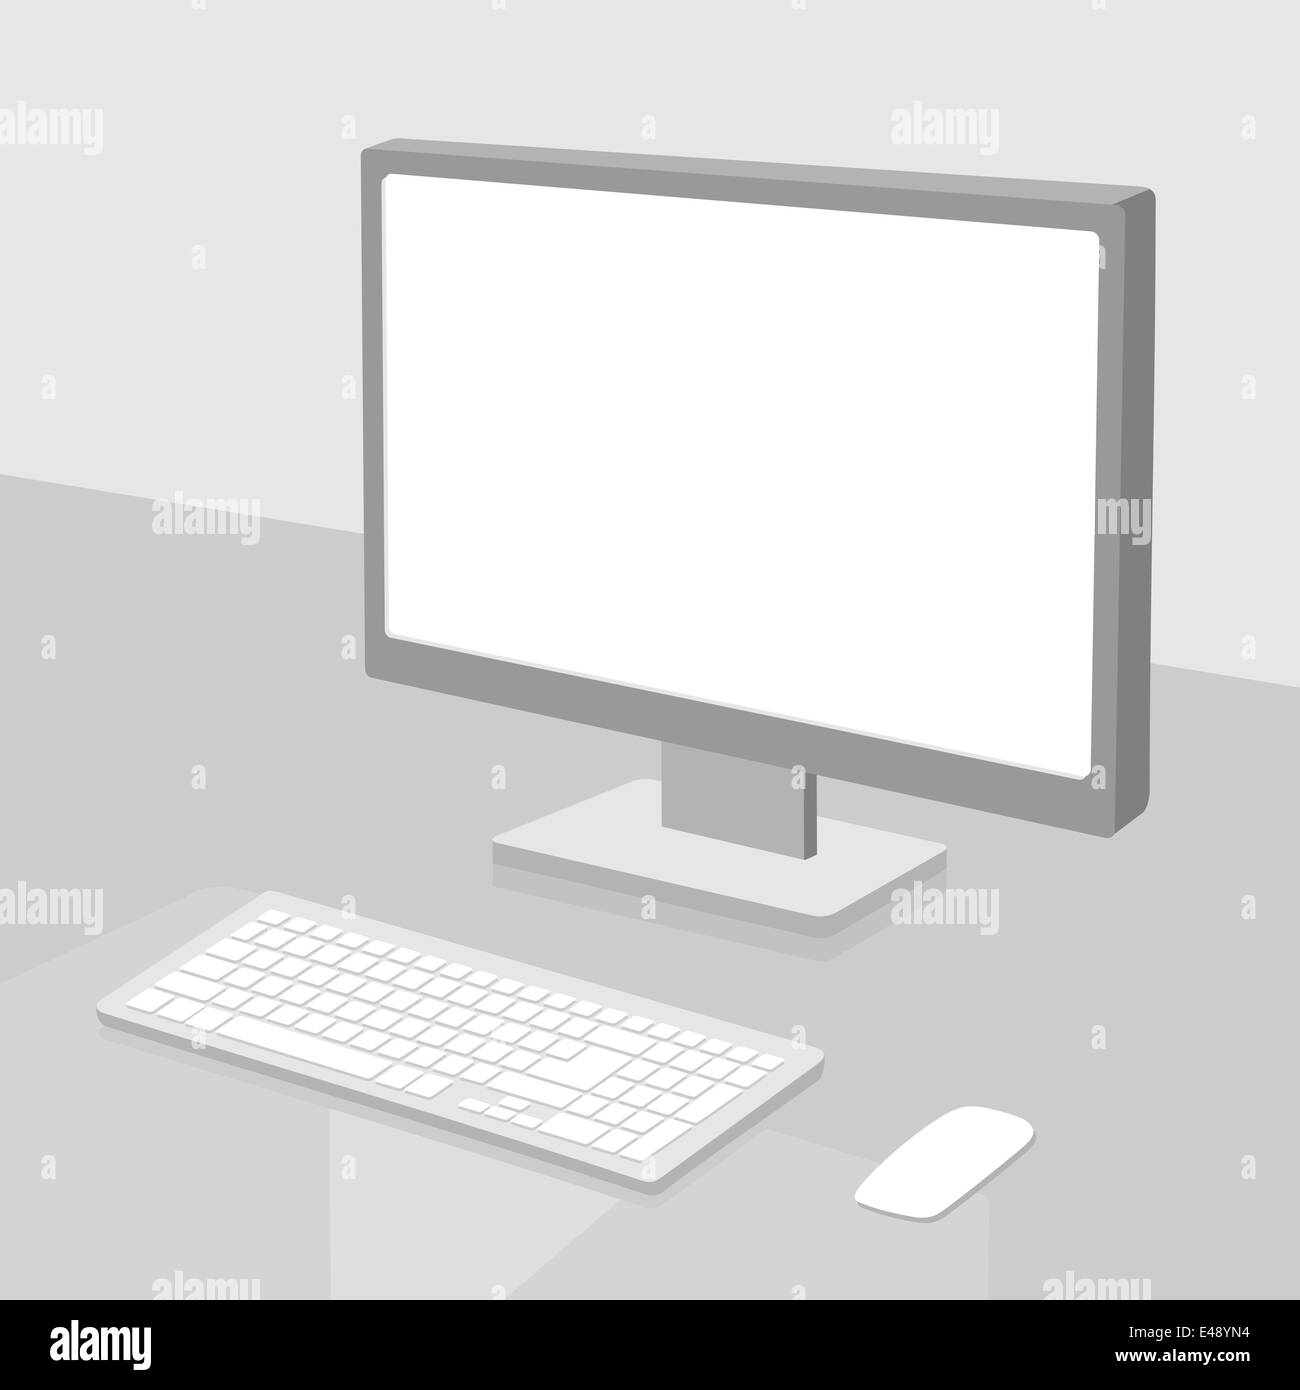 Personal computer - Stock Image